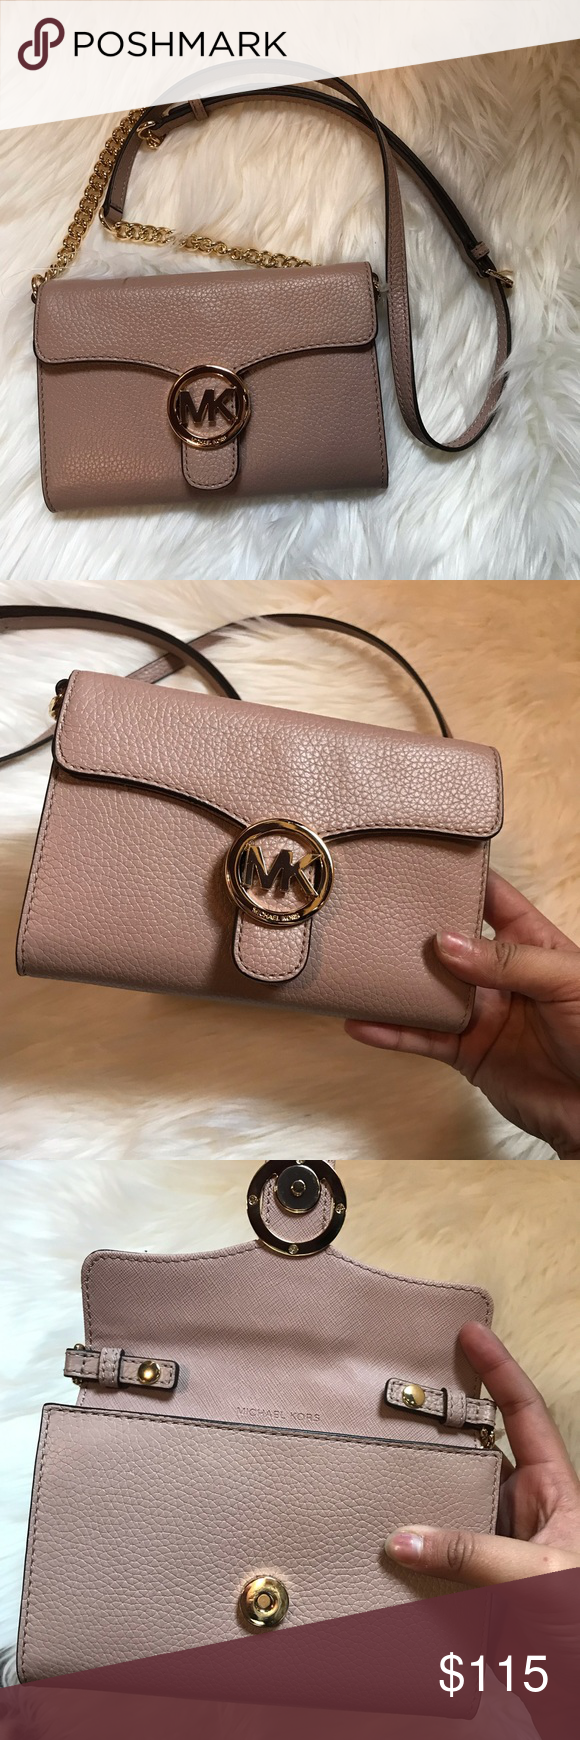 e1f1db4c1b88 Michael Kors Vanna Large Leather Phone Crossbody New With No tags. No dust  bag.